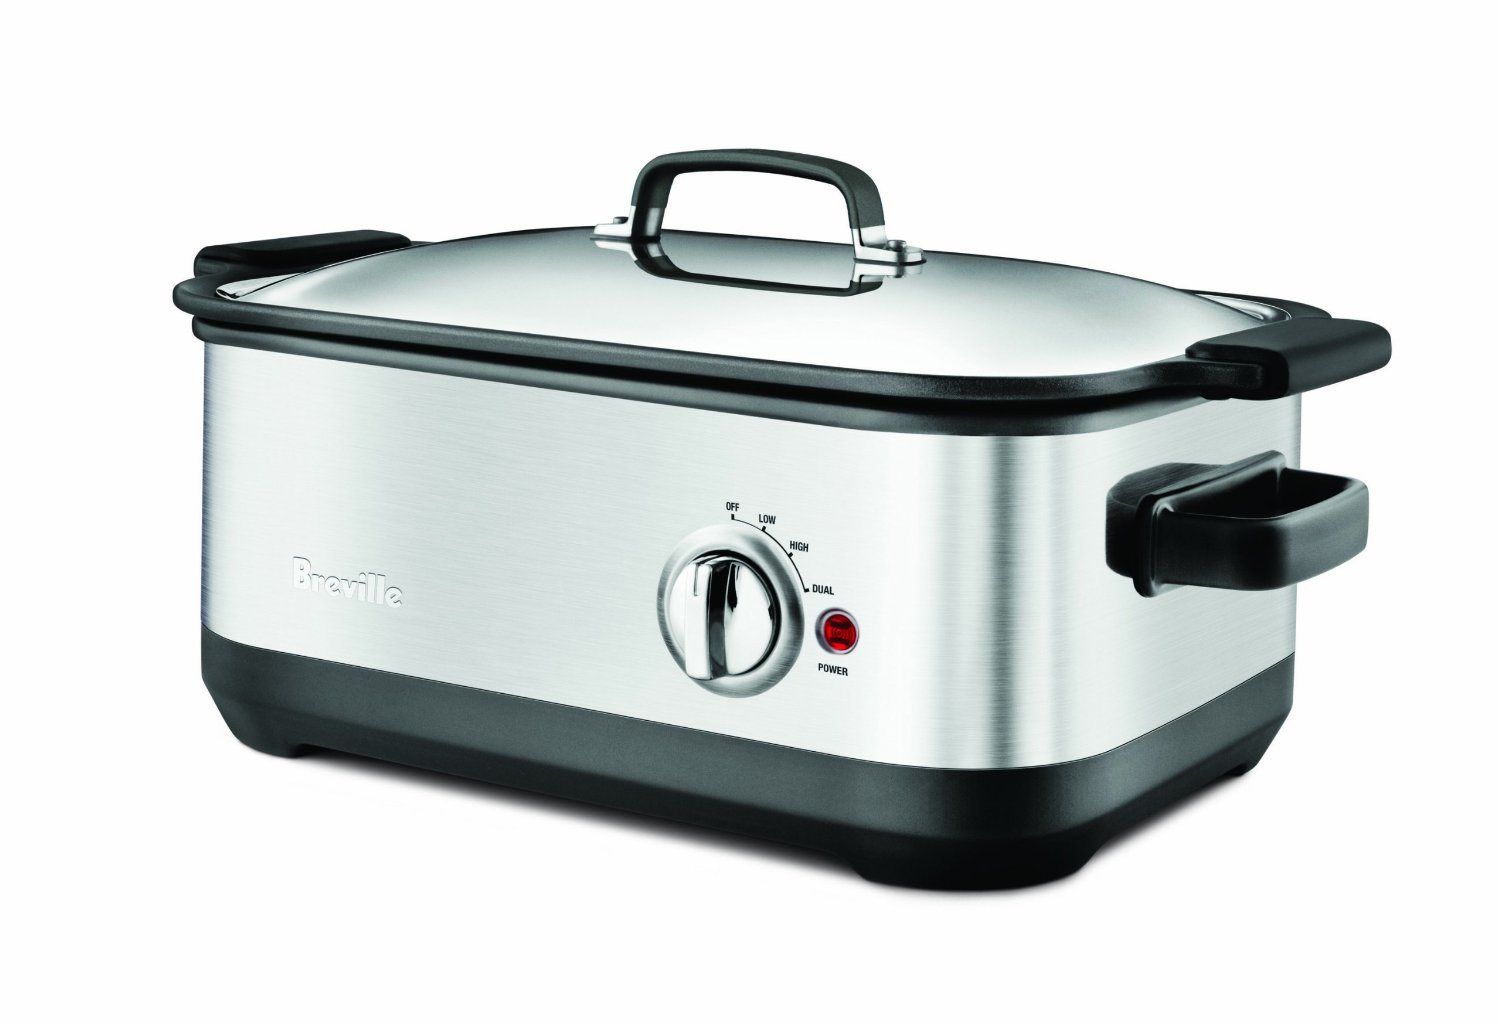 Breville Stainless Steel Fast Slow Cooker, 6 Quart